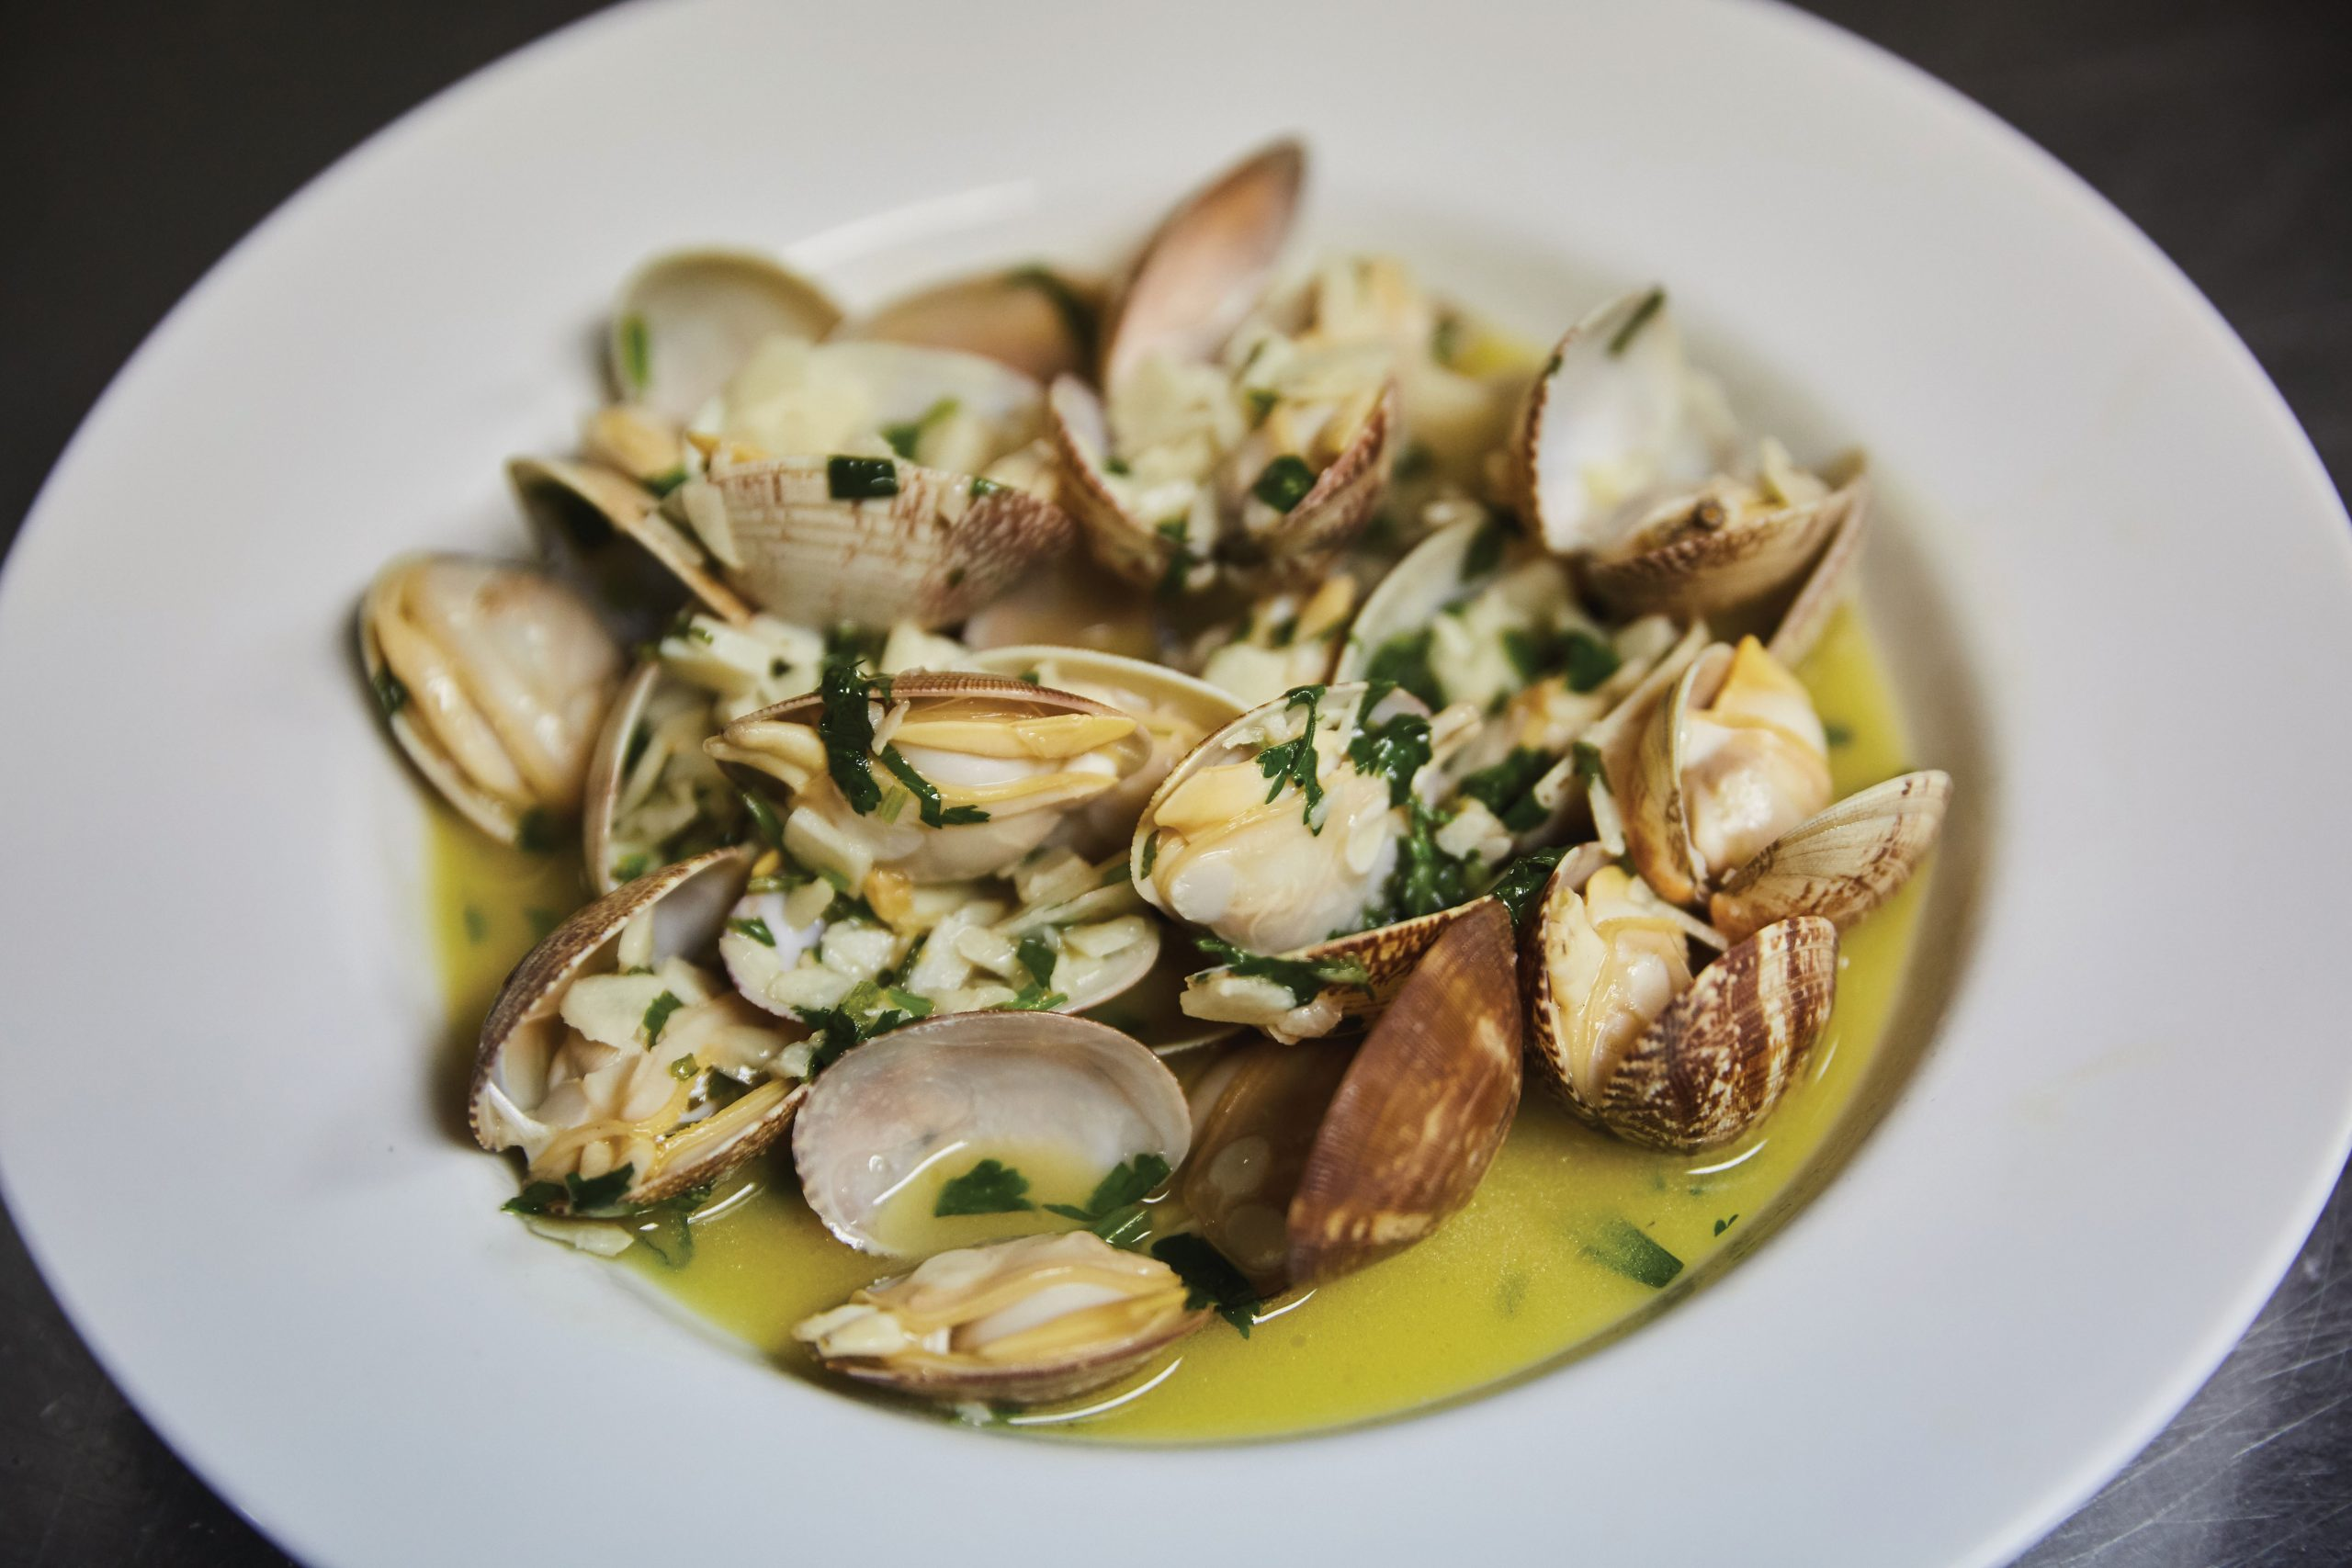 The club's version of clams with lemon and garlic in 'bulhão pato' sauce, which uses fresh coriander as a main ingredient - Photo by António Sanmarful